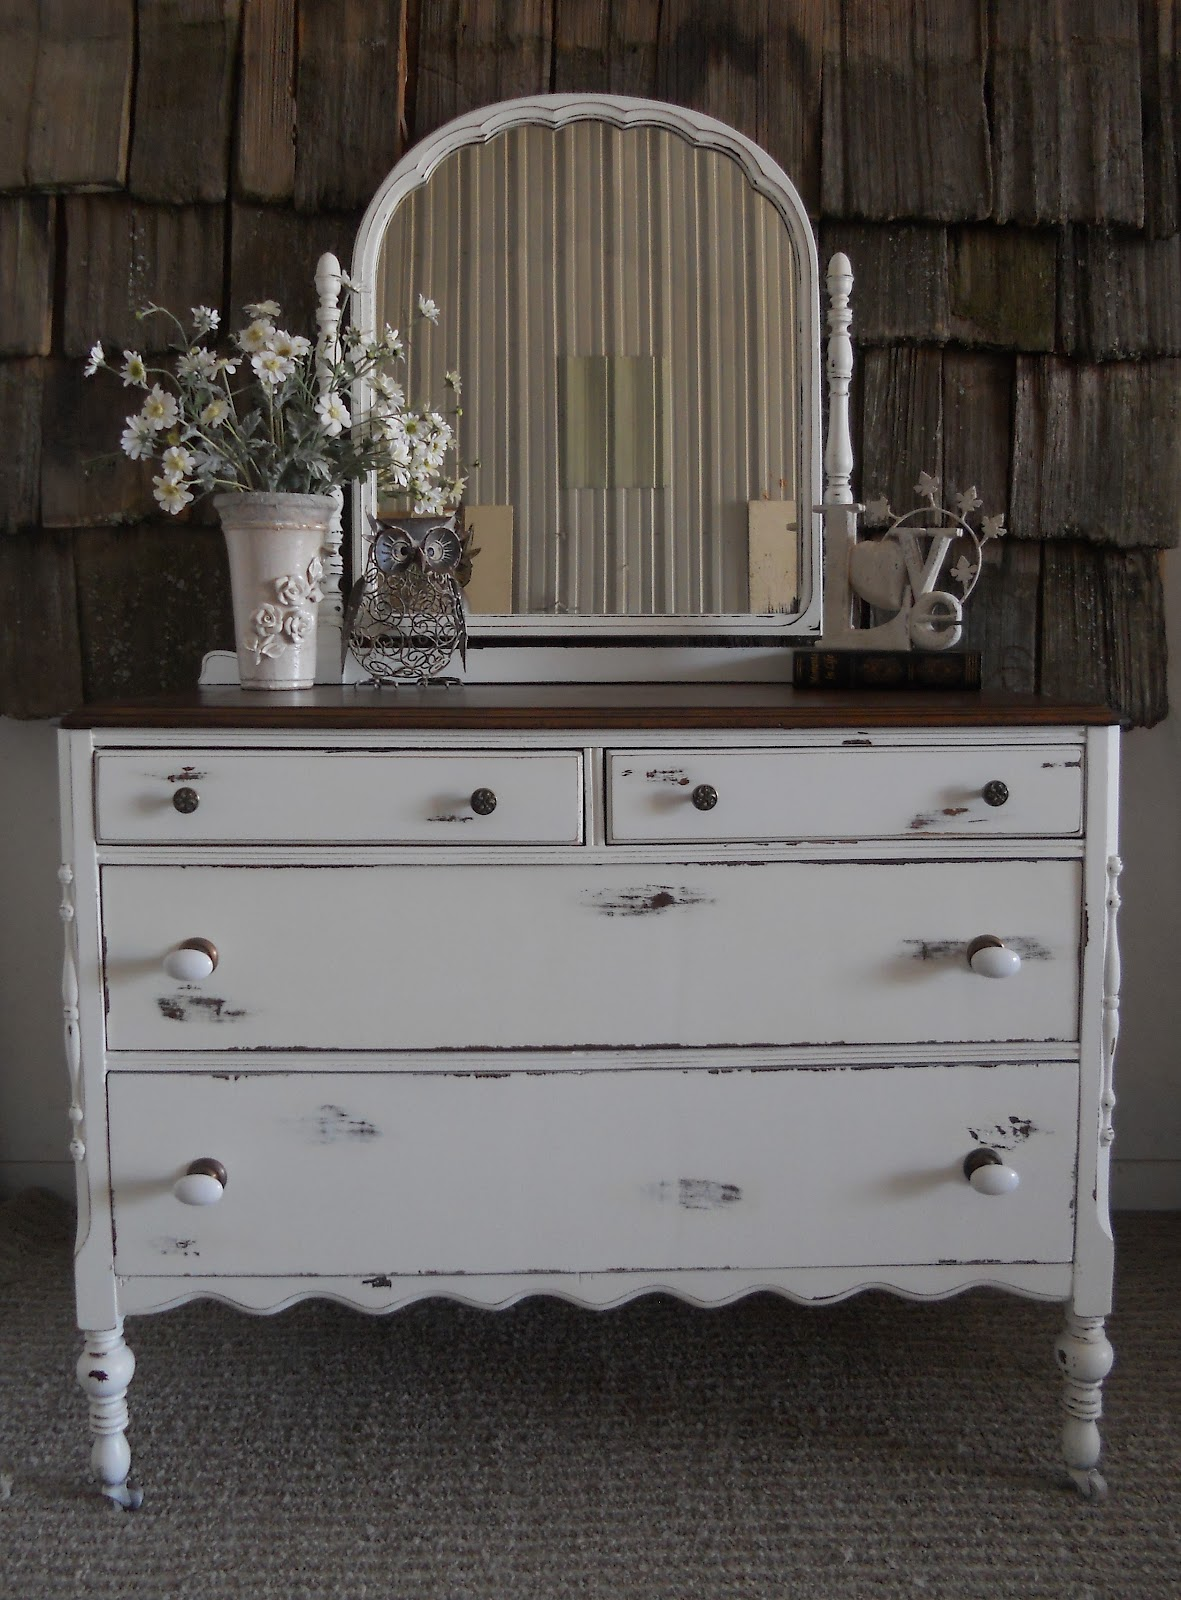 createinspire scalloped antique dresser. Black Bedroom Furniture Sets. Home Design Ideas